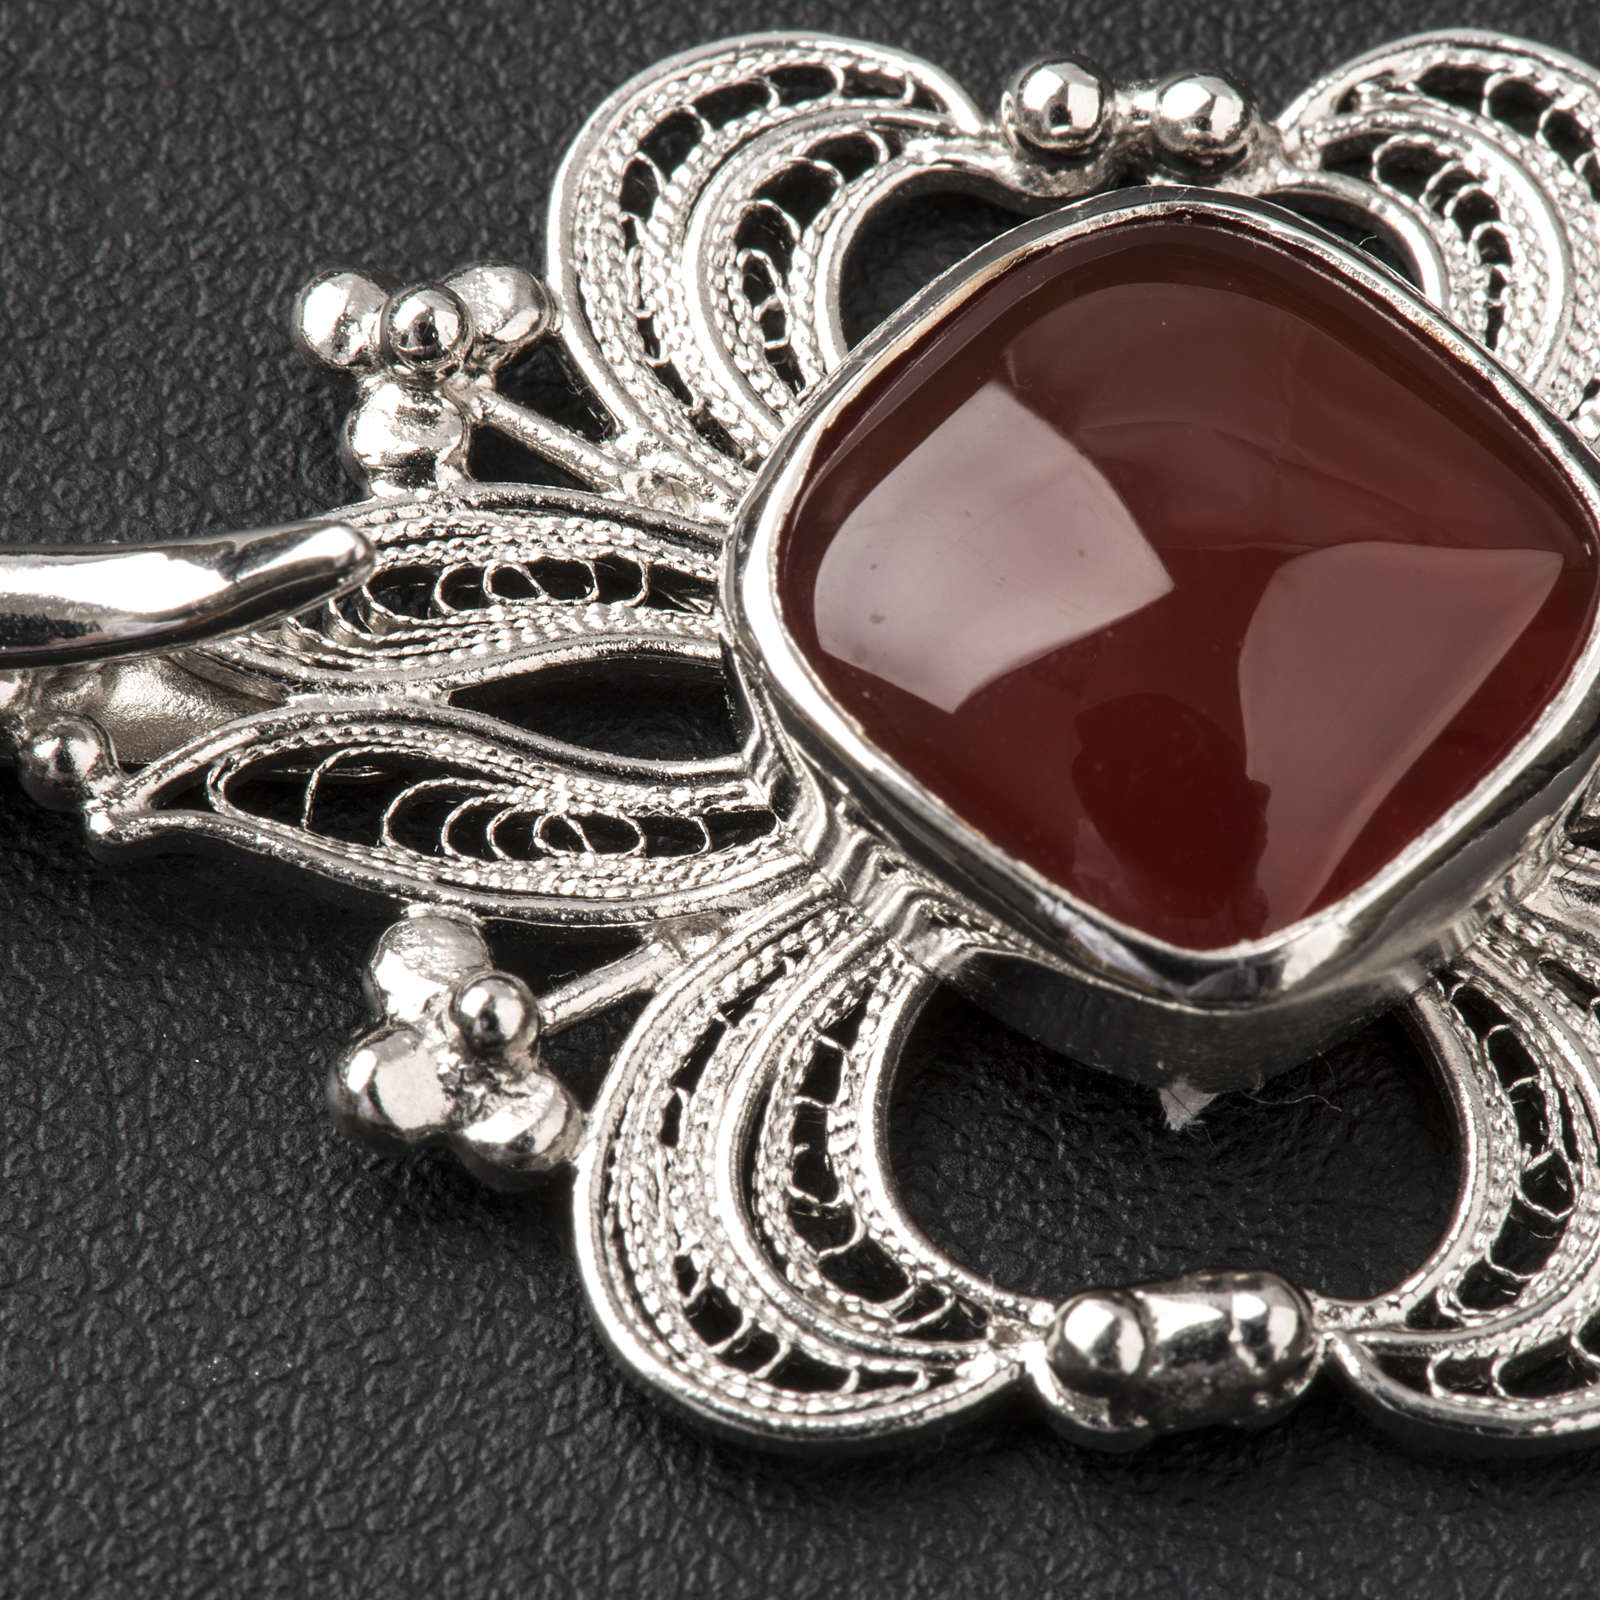 Cope Clasp in silver 800 filigree with carnelian stone 4